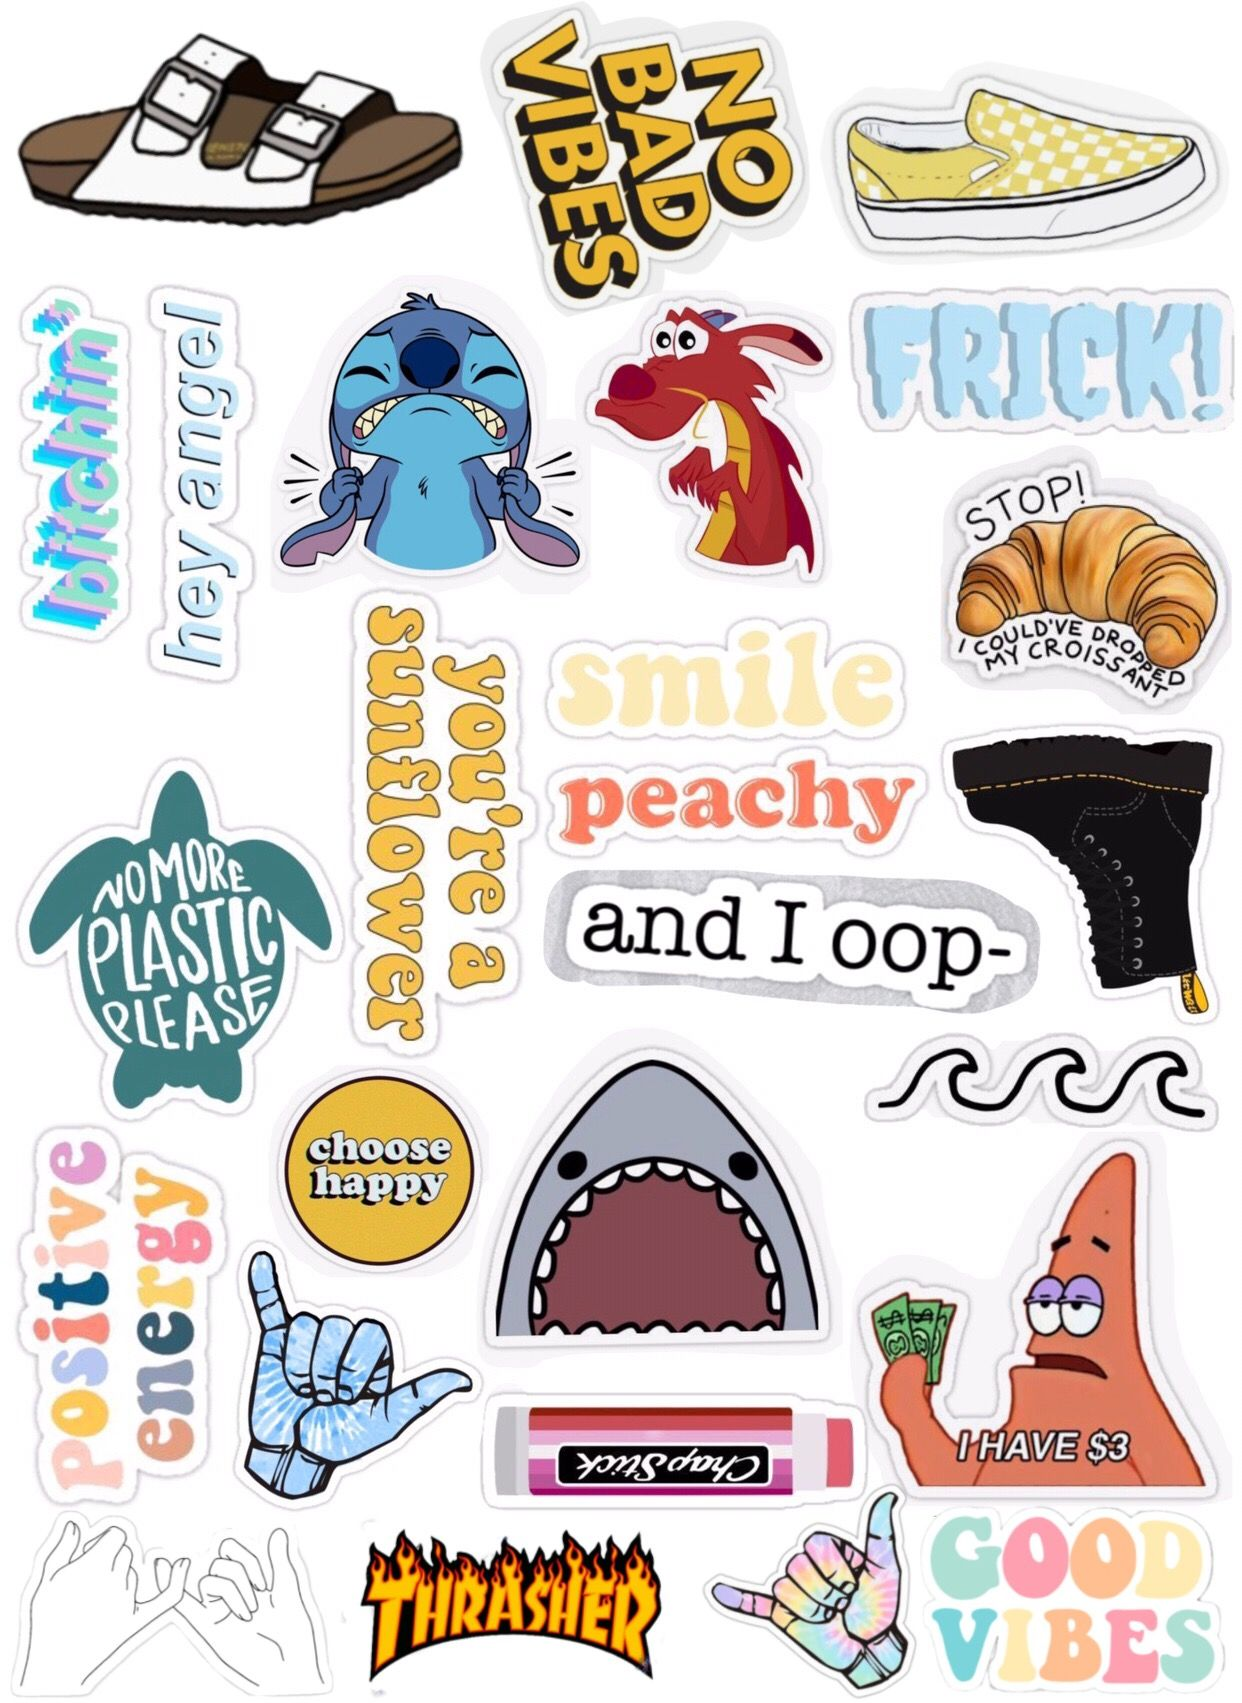 Pin by Janell Suarez on Vision Board | Aesthetic stickers ...